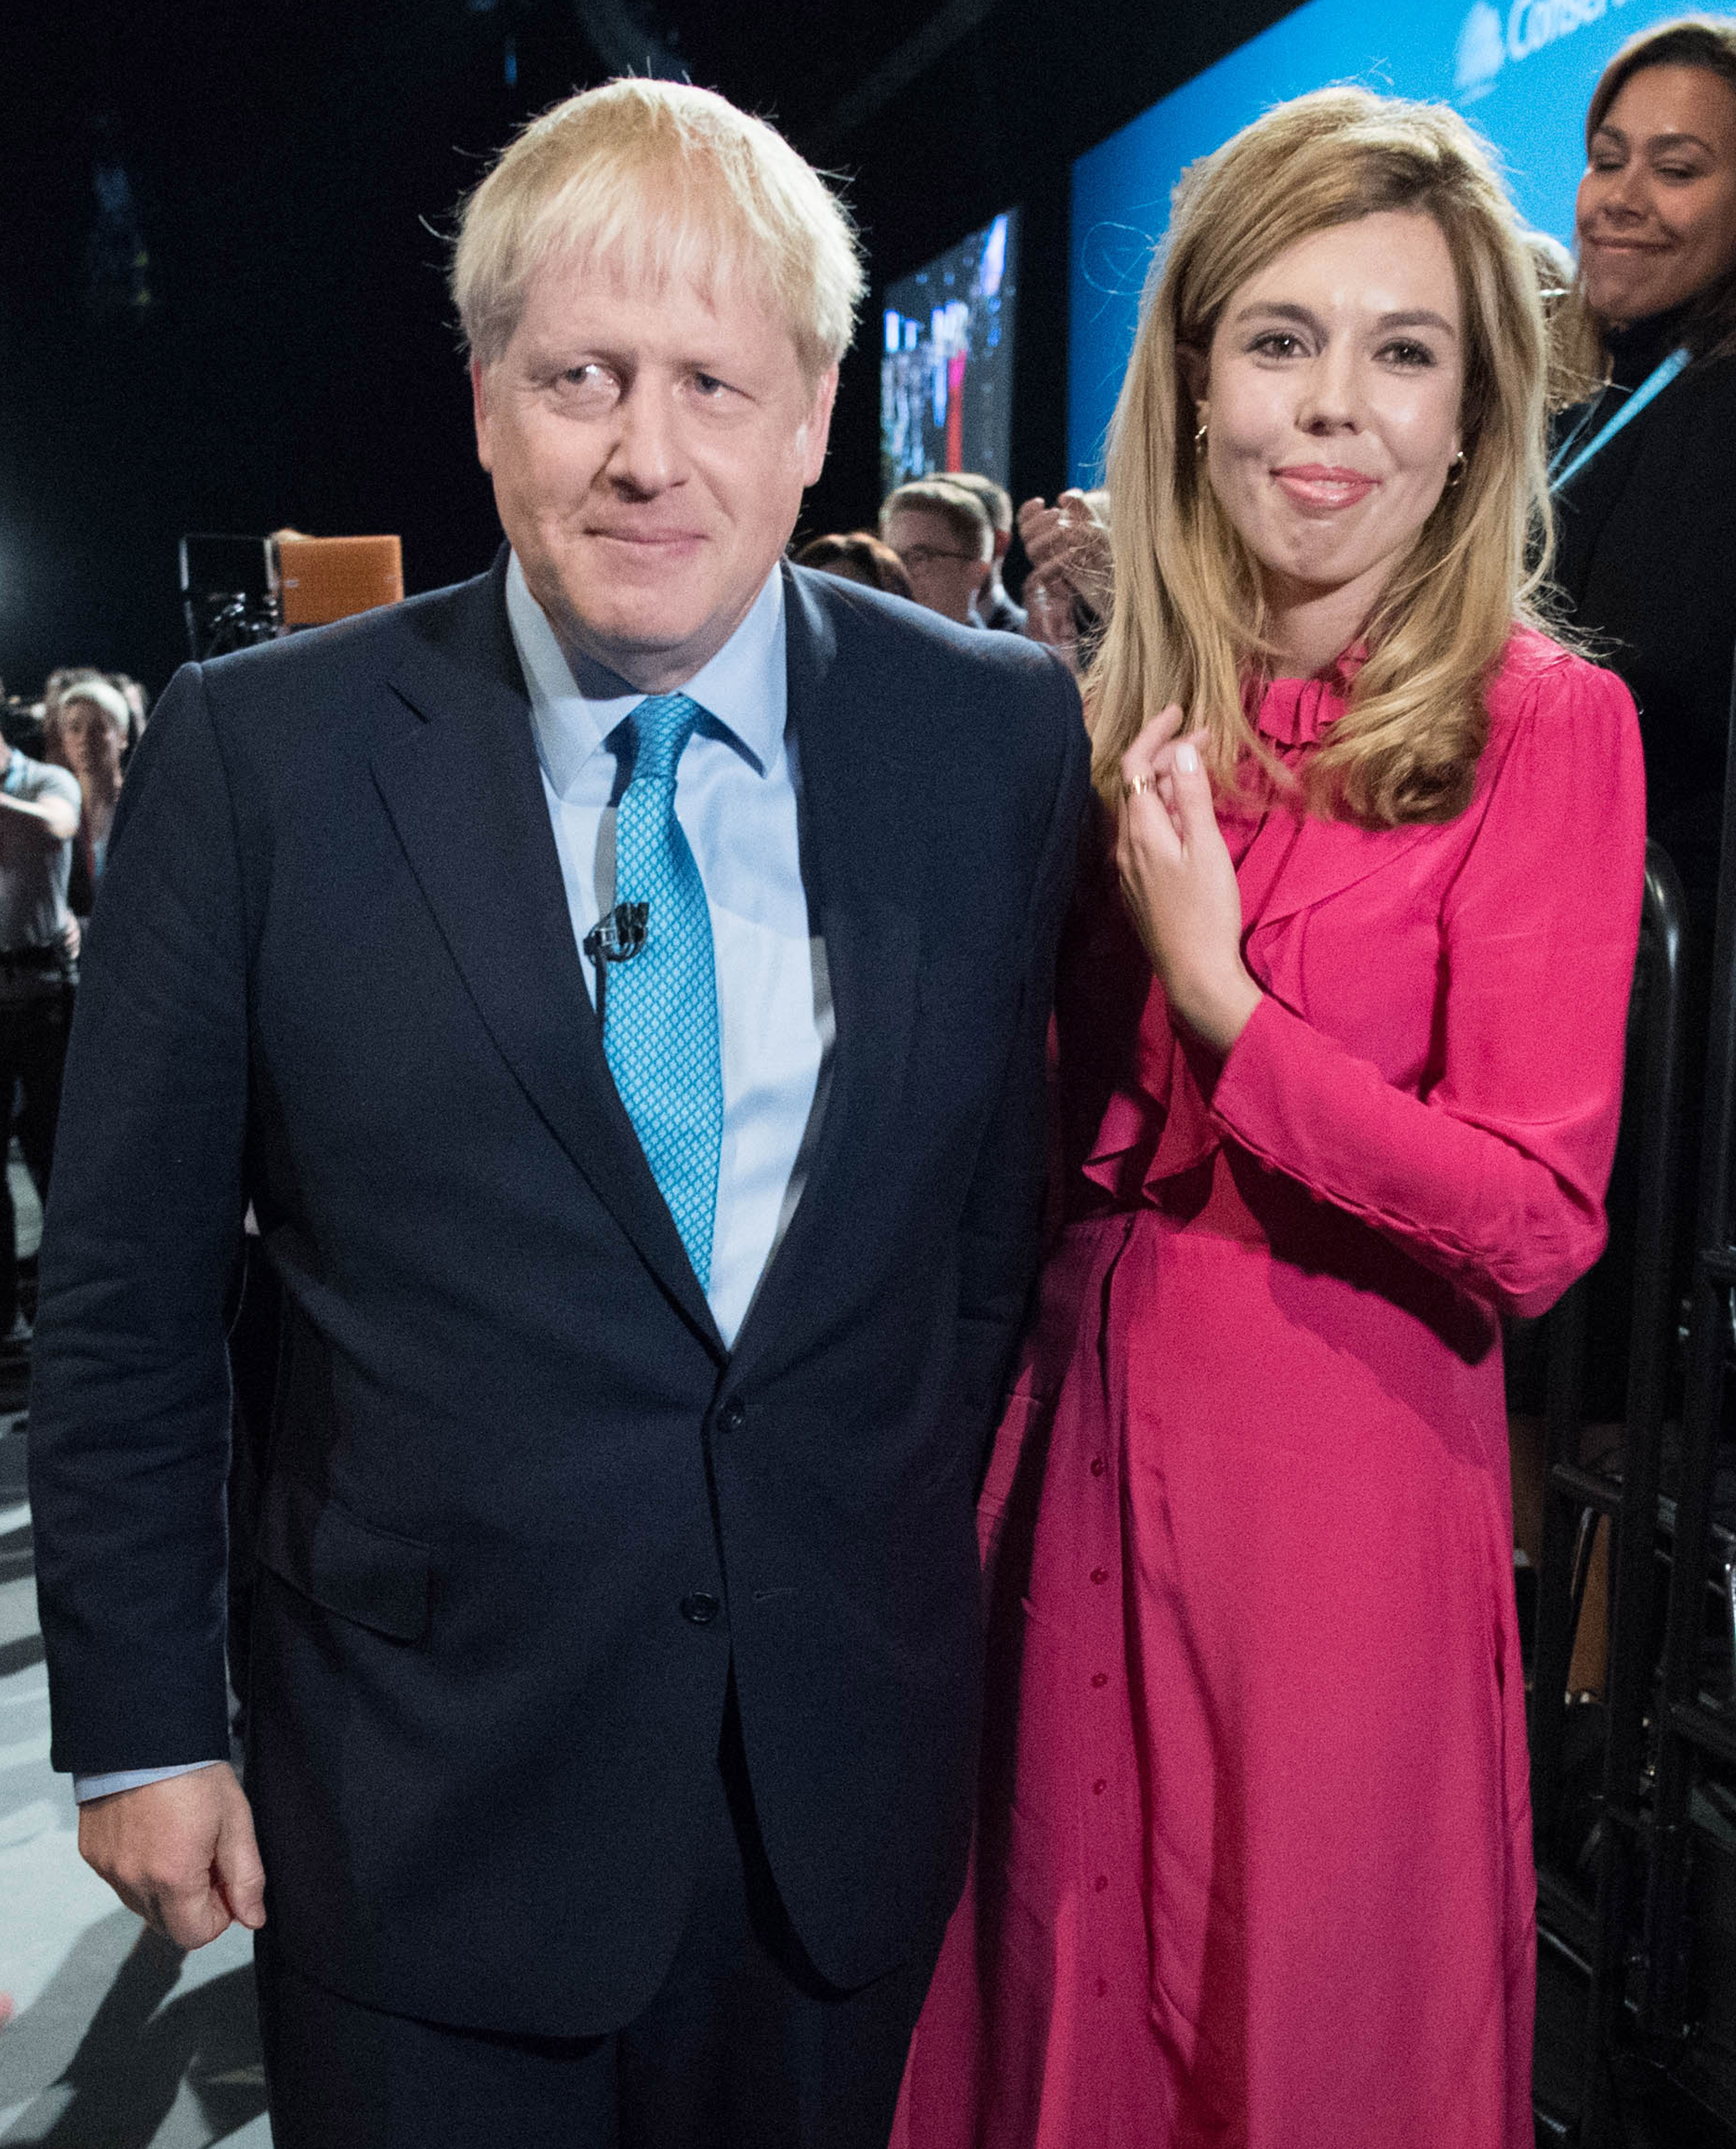 File photo dated 02/10/2019 of Prime Minister Boris Johnson with partner Carrie Symonds, they have announced that they are expecting a baby in the early summer and that they have got engaged.